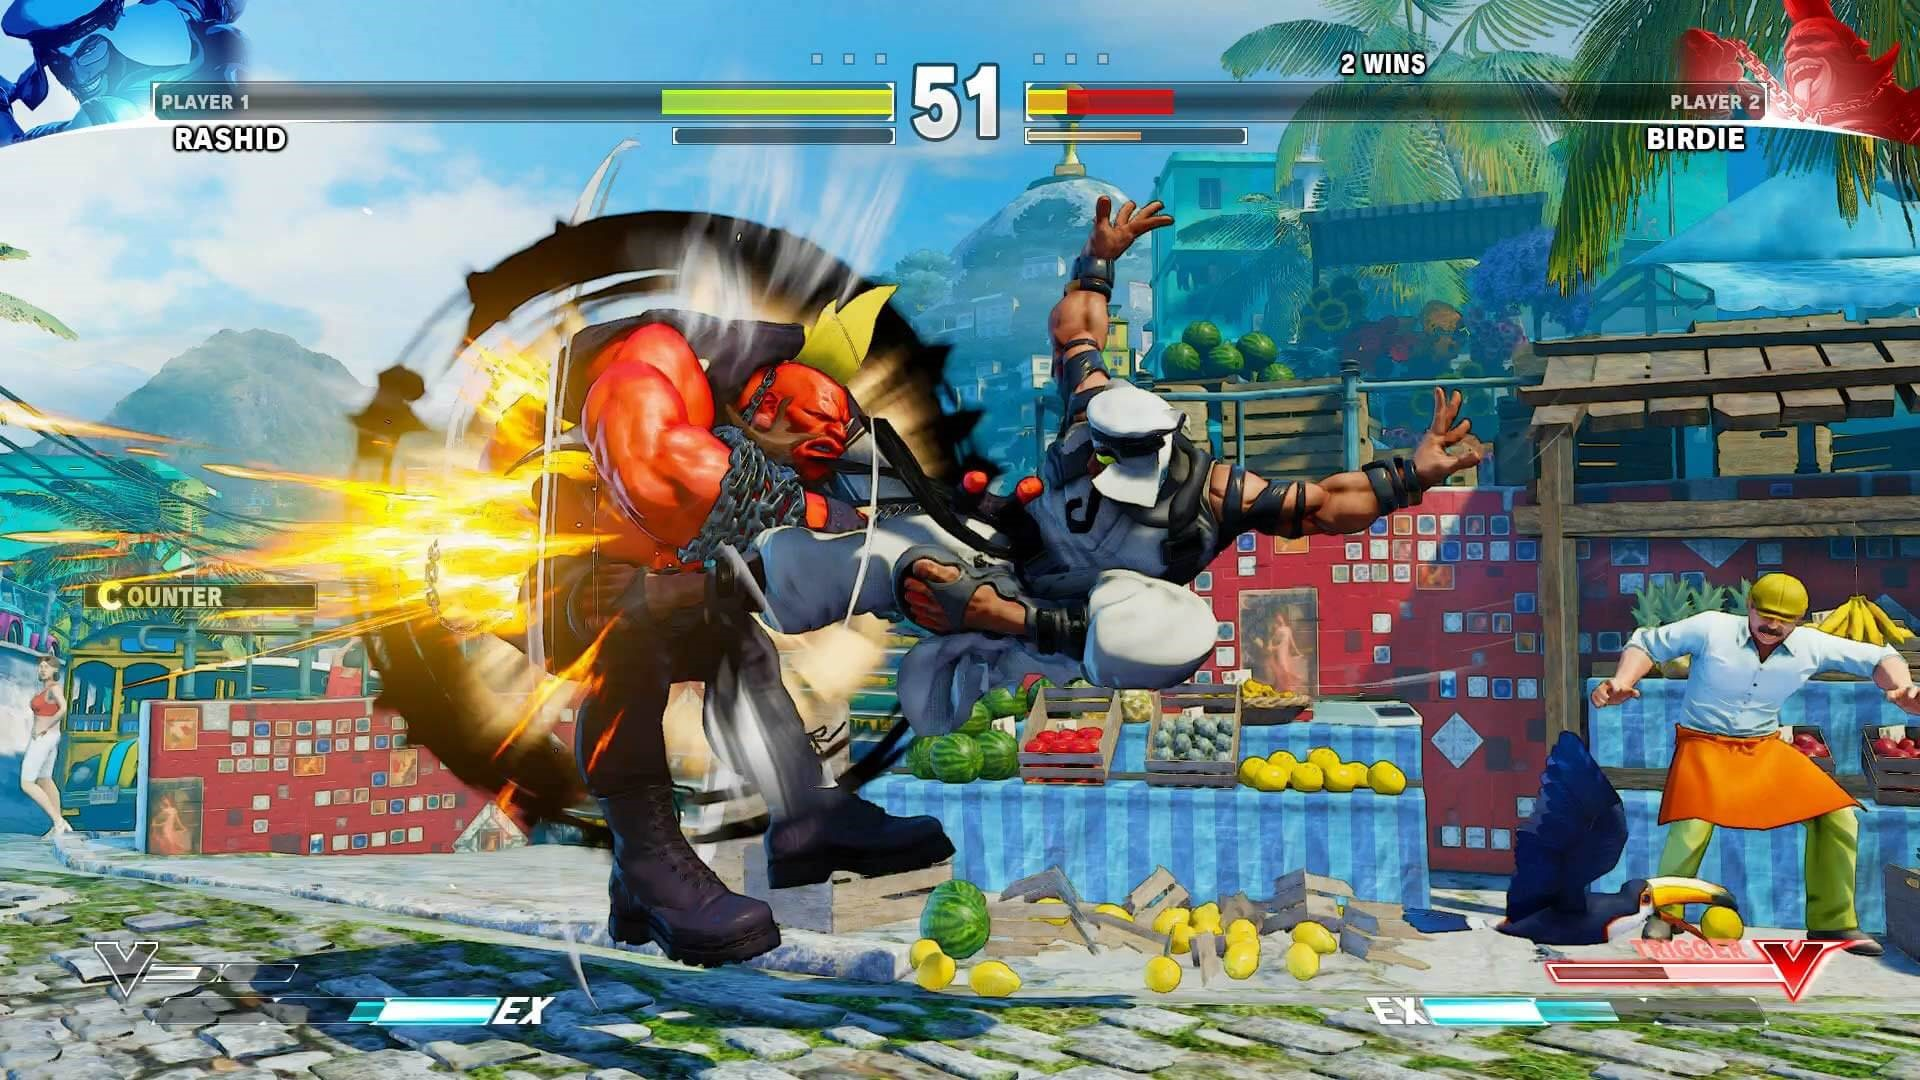 3006876-street-fighter-v-screenshot-2016-02-15-14-27-35.jpg